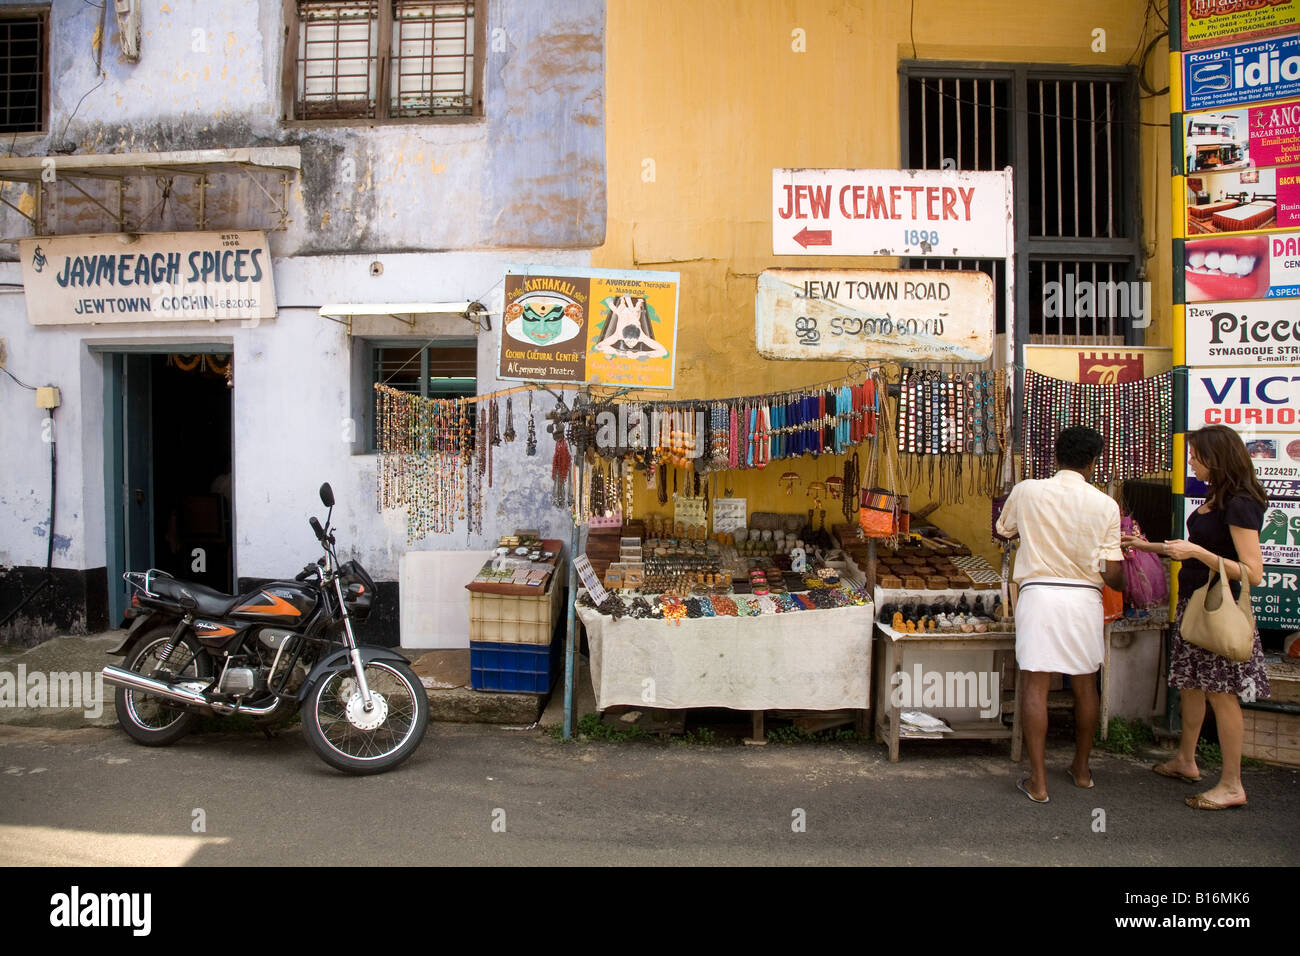 A woman visits a stall in Jew Town Road, the lane that leads towards the synagogue in Jew Town, Kochi. - Stock Image